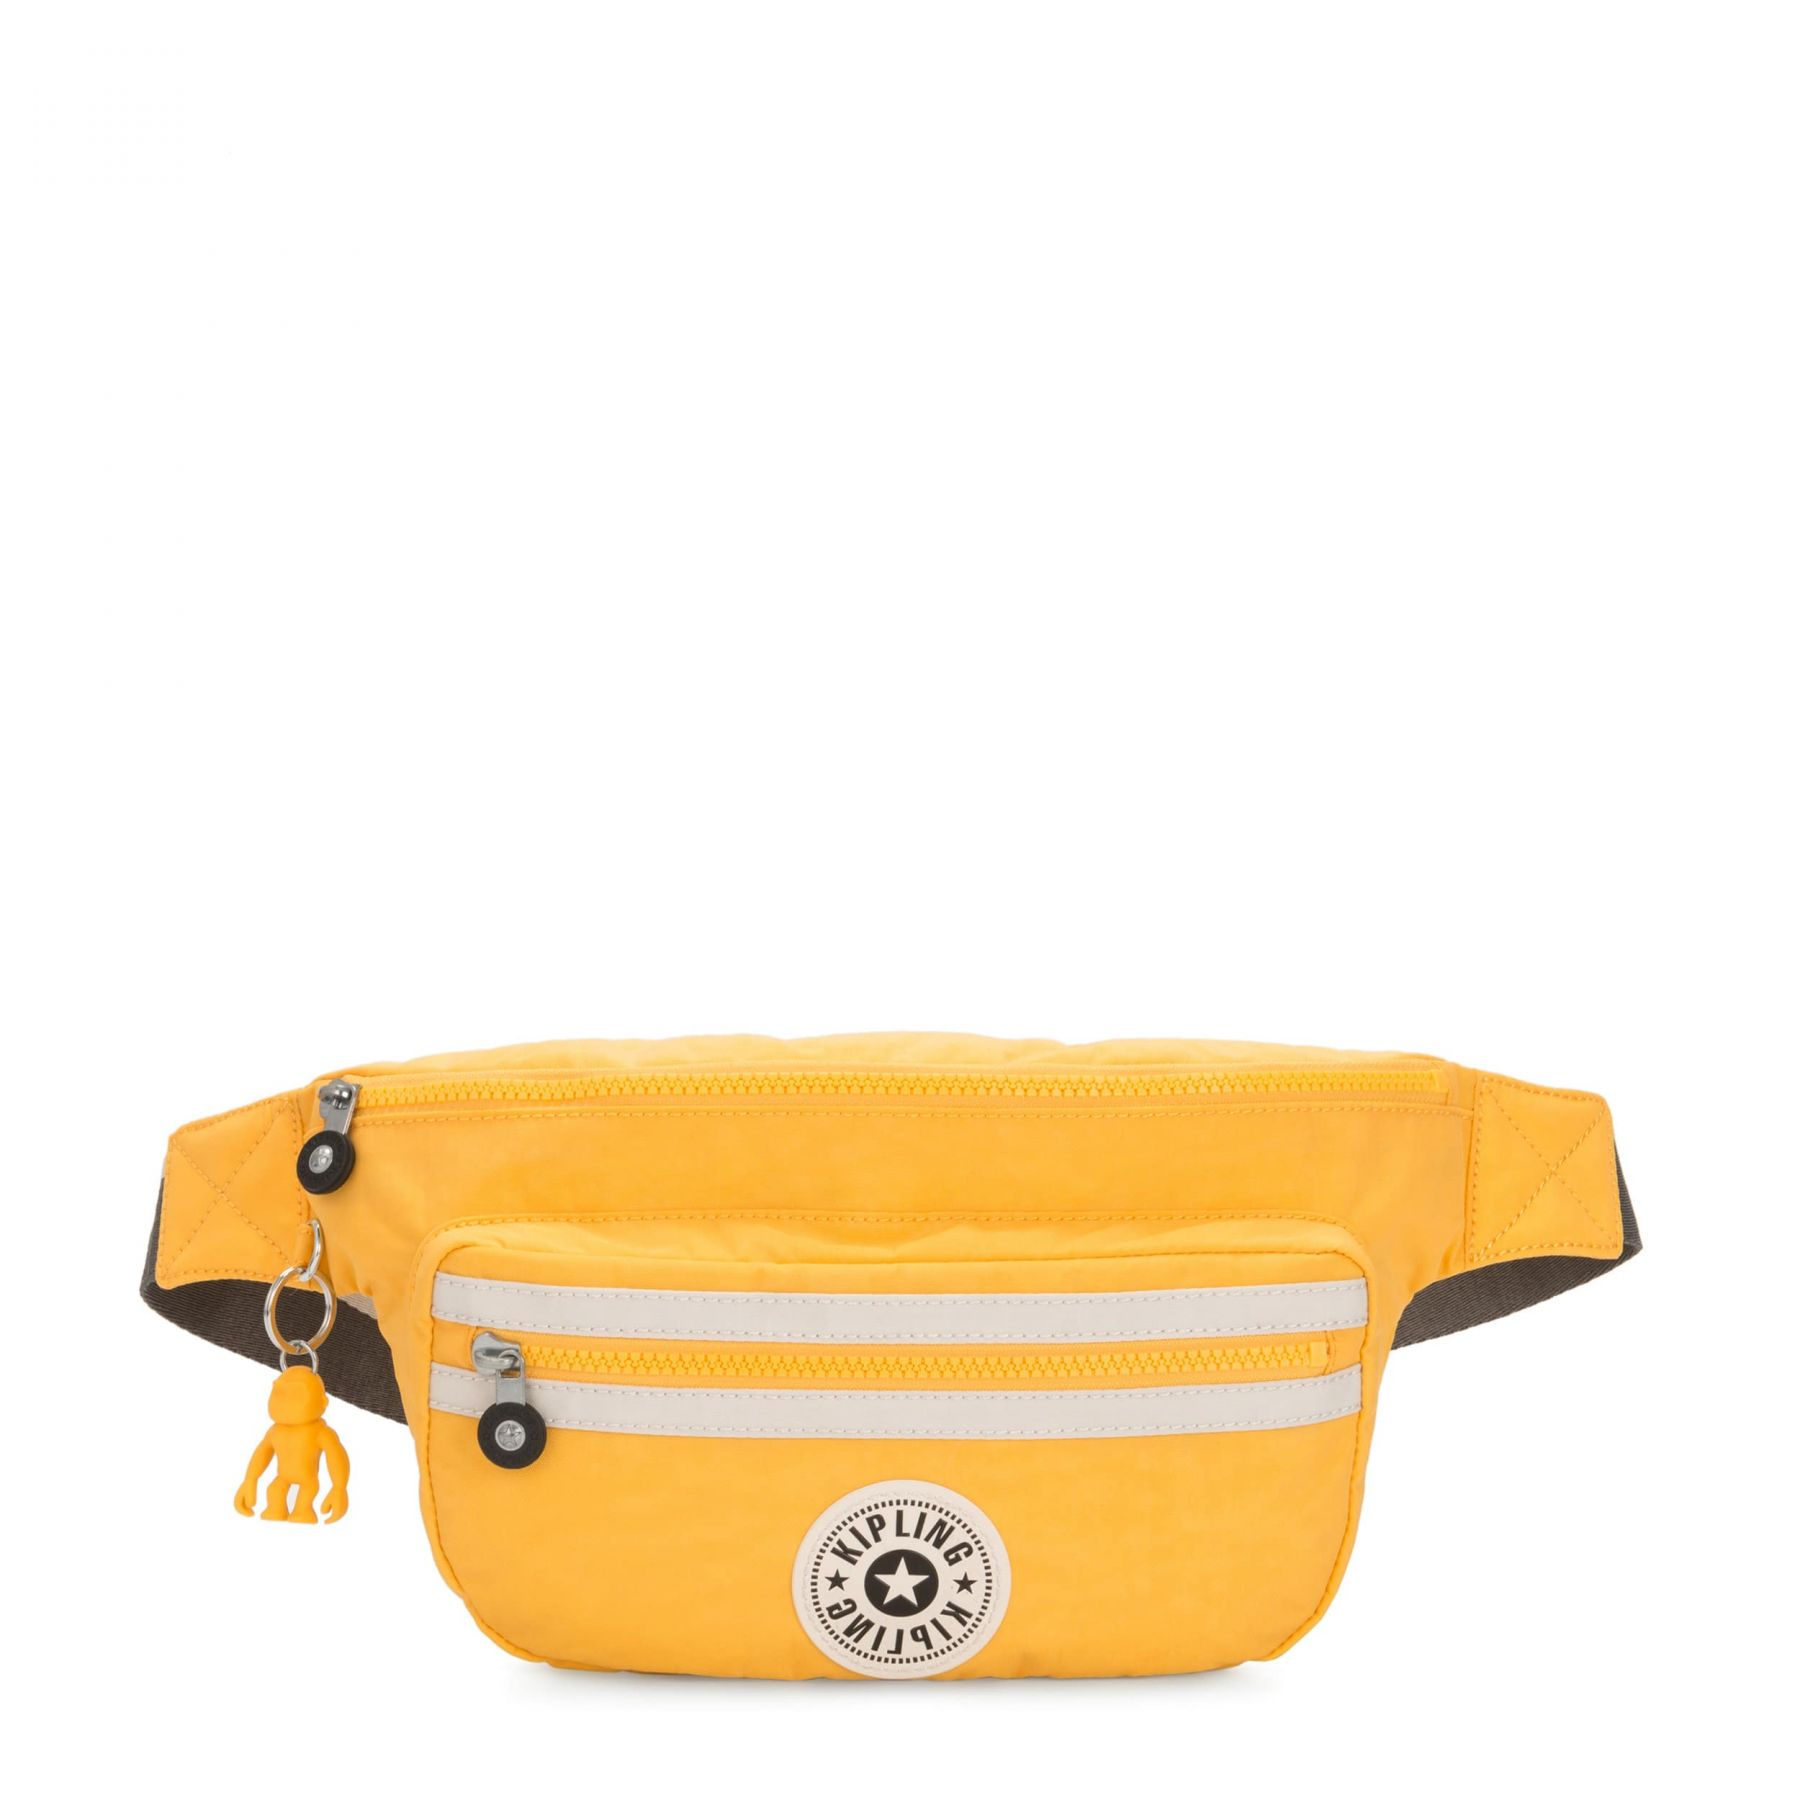 YASEMINA XL Online Exclusives by Kipling - Front view